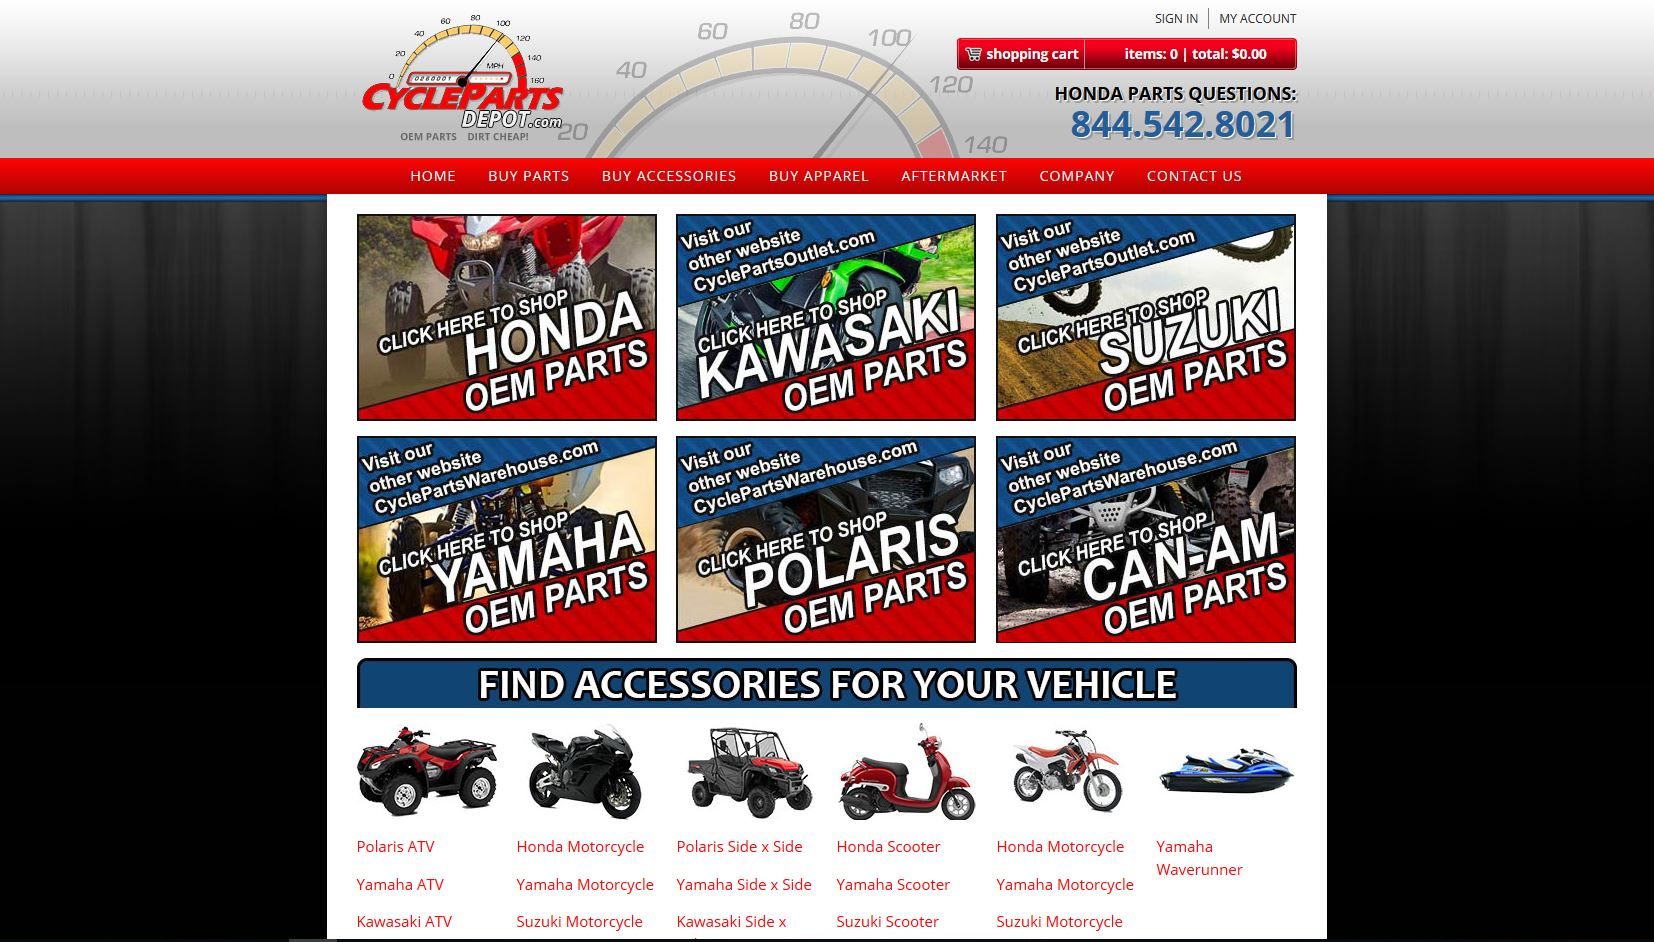 cyclepartsdepot.com